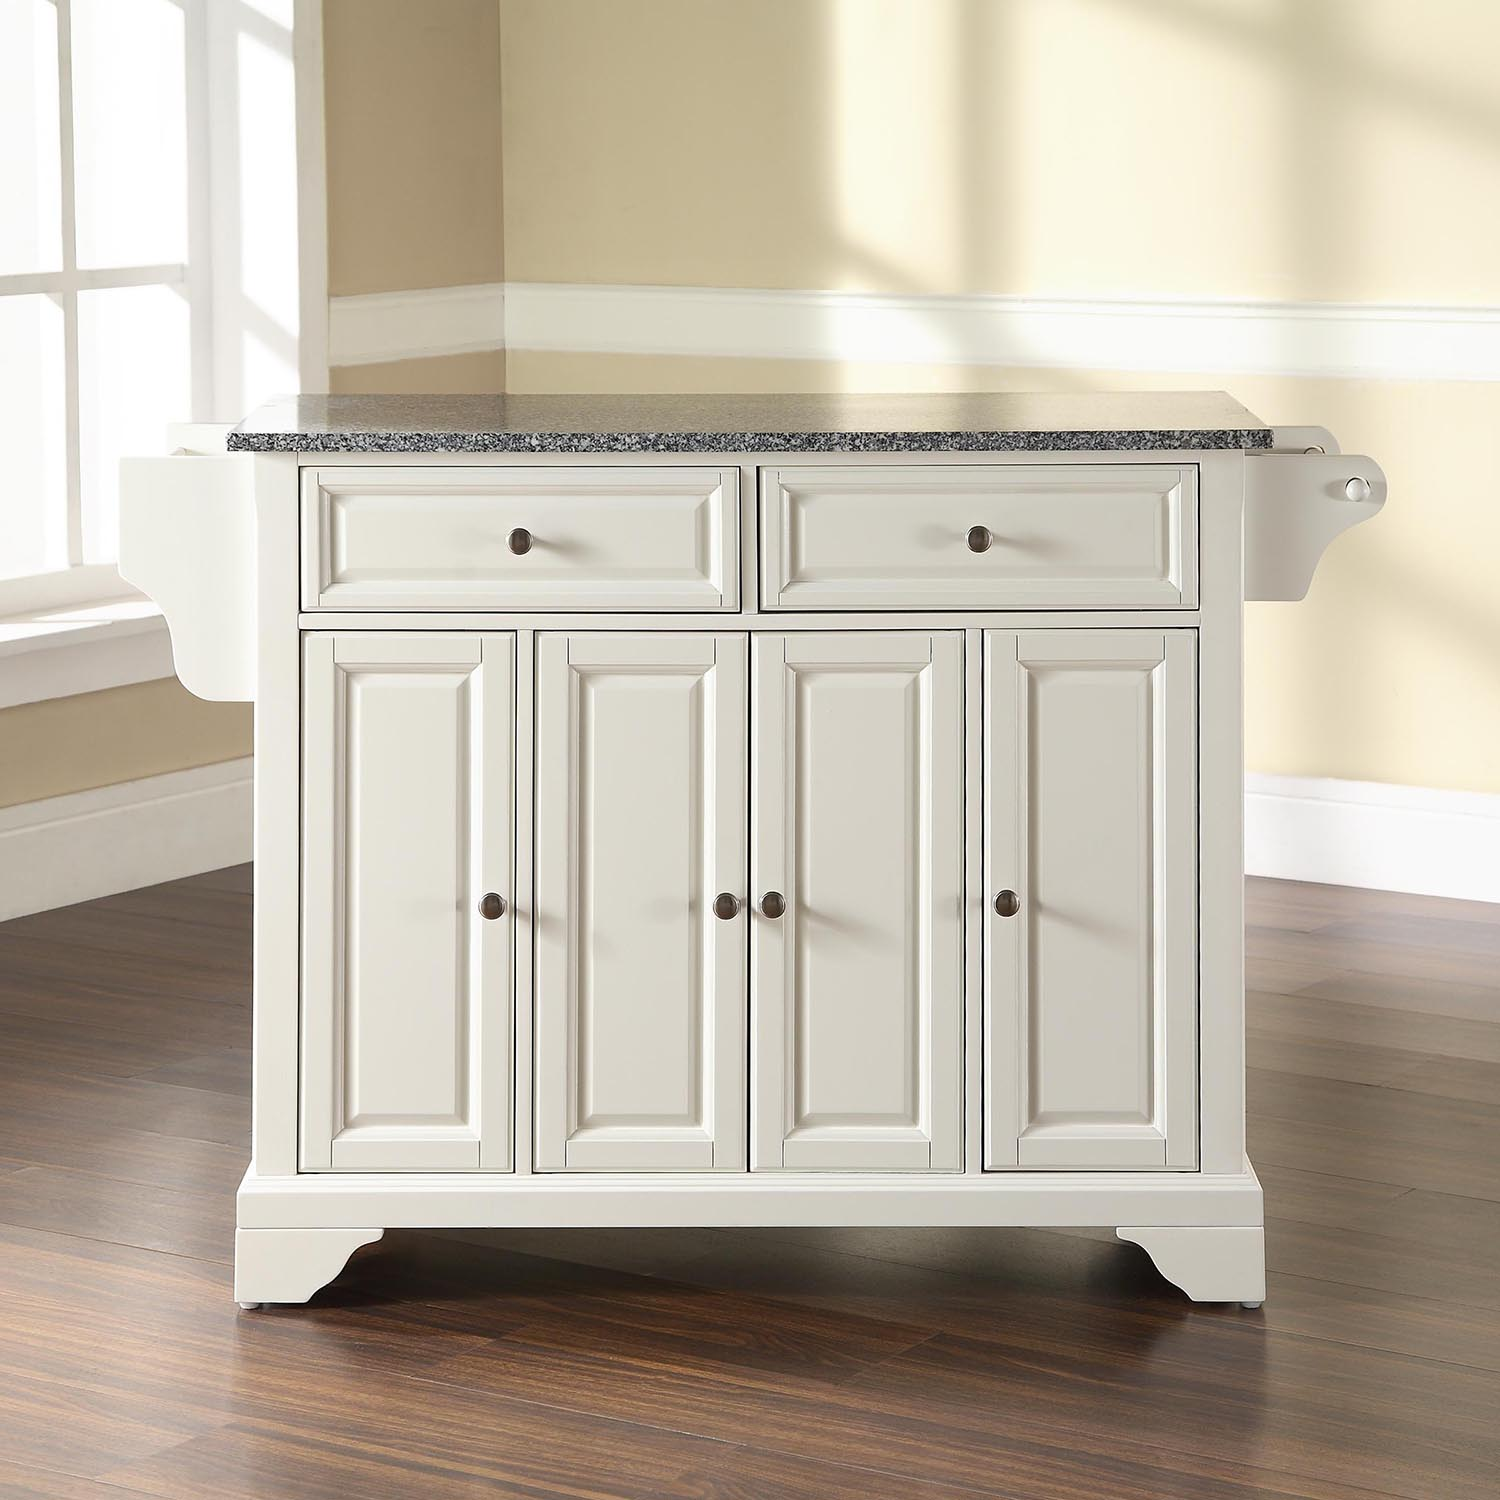 Kitchen Island With Granite Top: LaFayette Solid Granite Top Kitchen Island - White